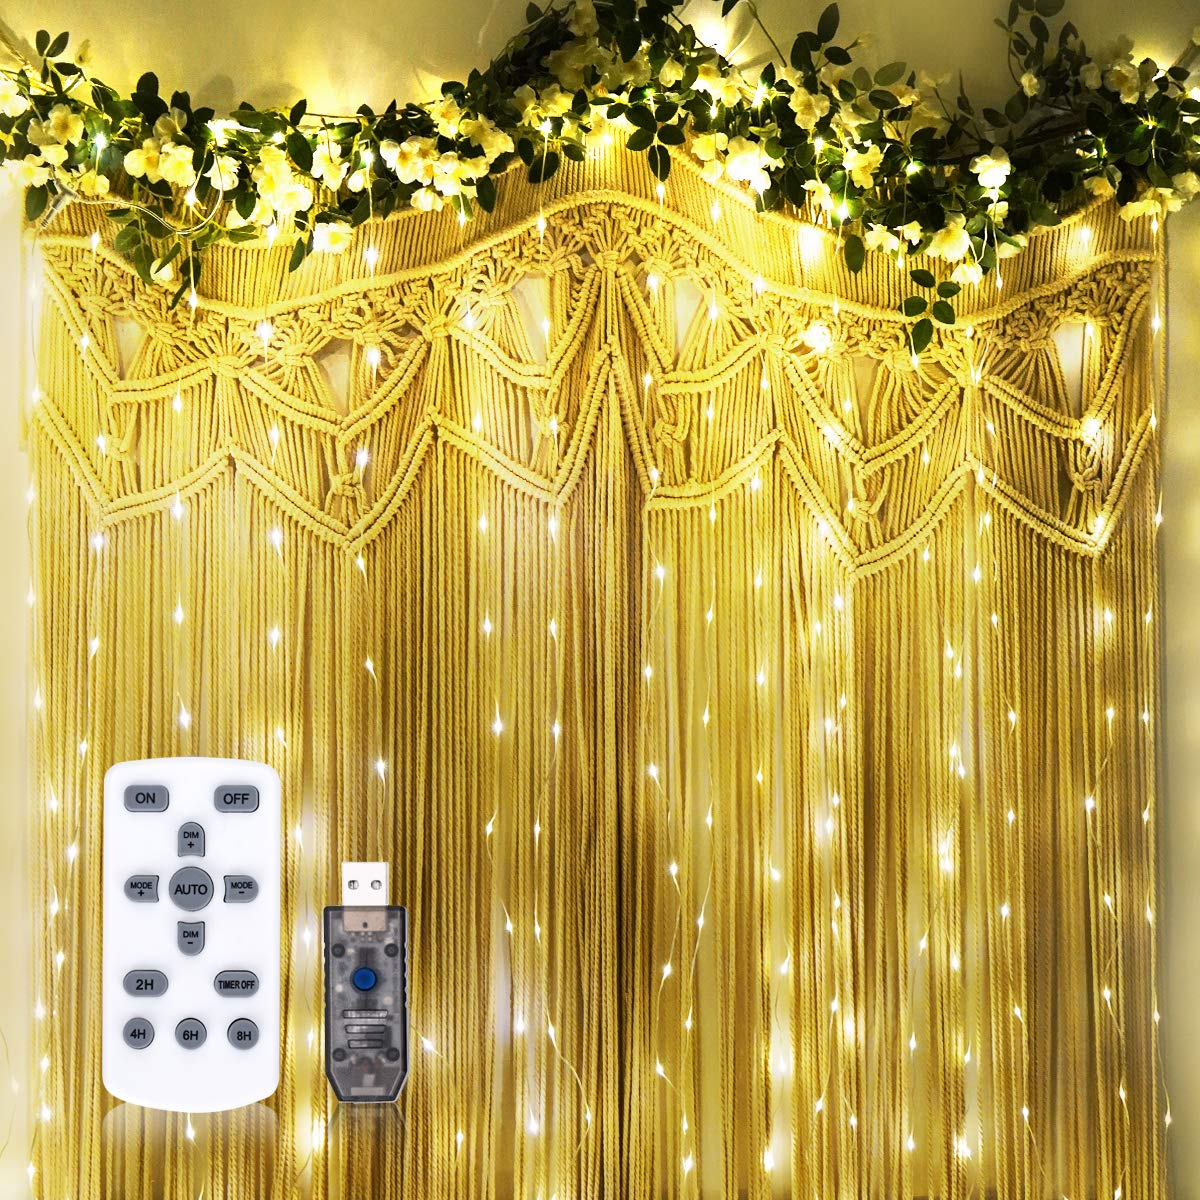 Twinkle String Lights with Remote Control Timer 300 Led USB Powered for Window Curtain Christmas Wedding Party Home Garden Patio Decoration Fairy Lights 118in x 118in (Warm Light)